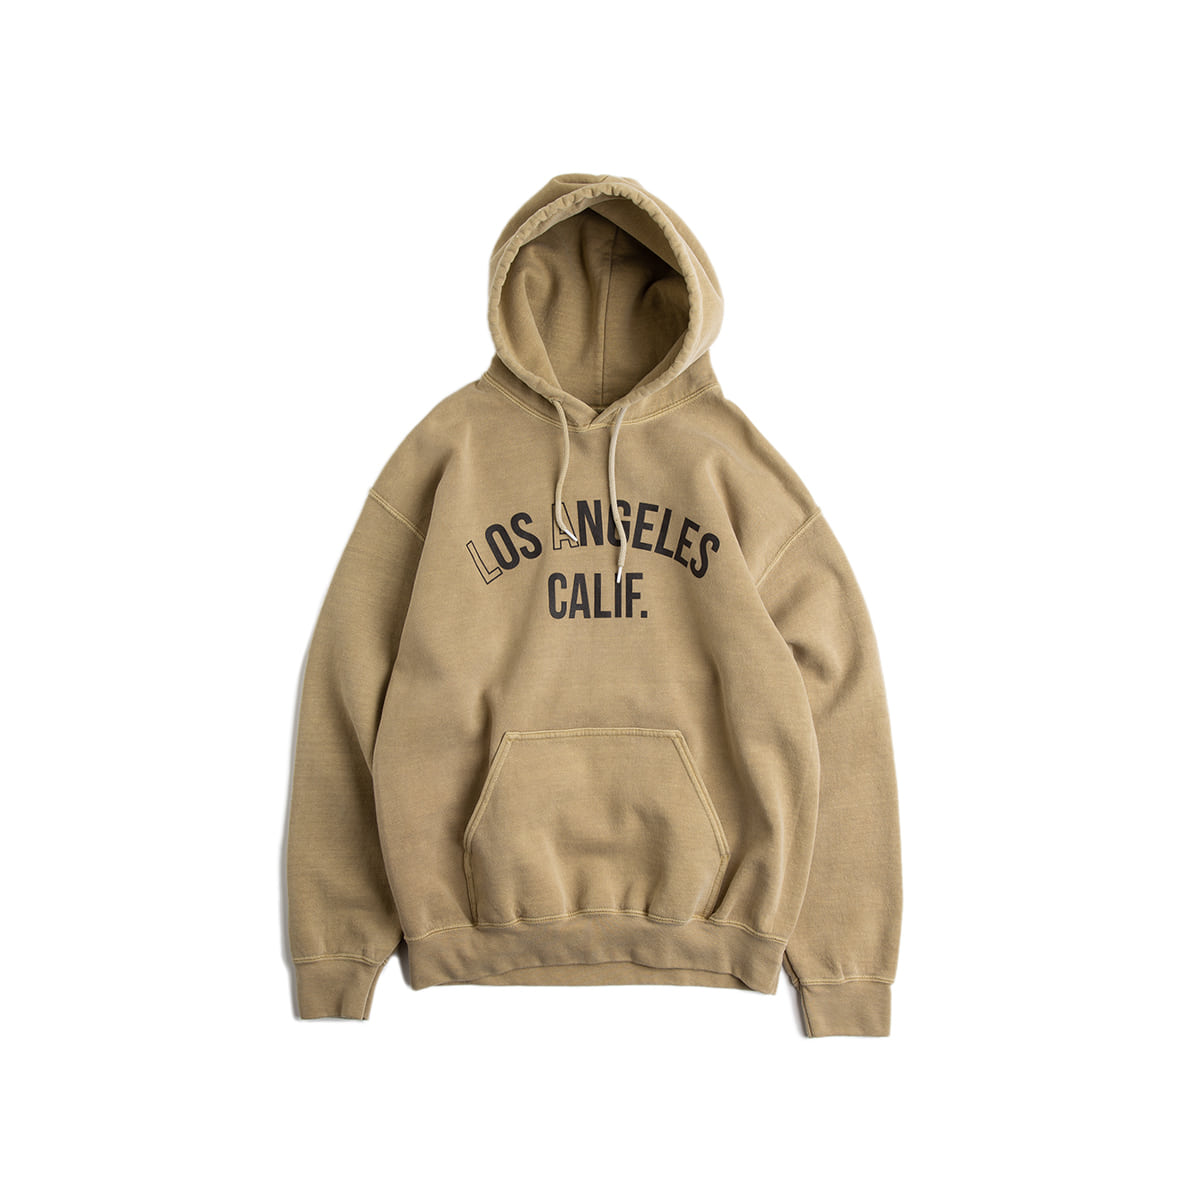 "Los Angeles. California HOODY ""Pigment Mojave Sand"" new 피그먼트 컬러"